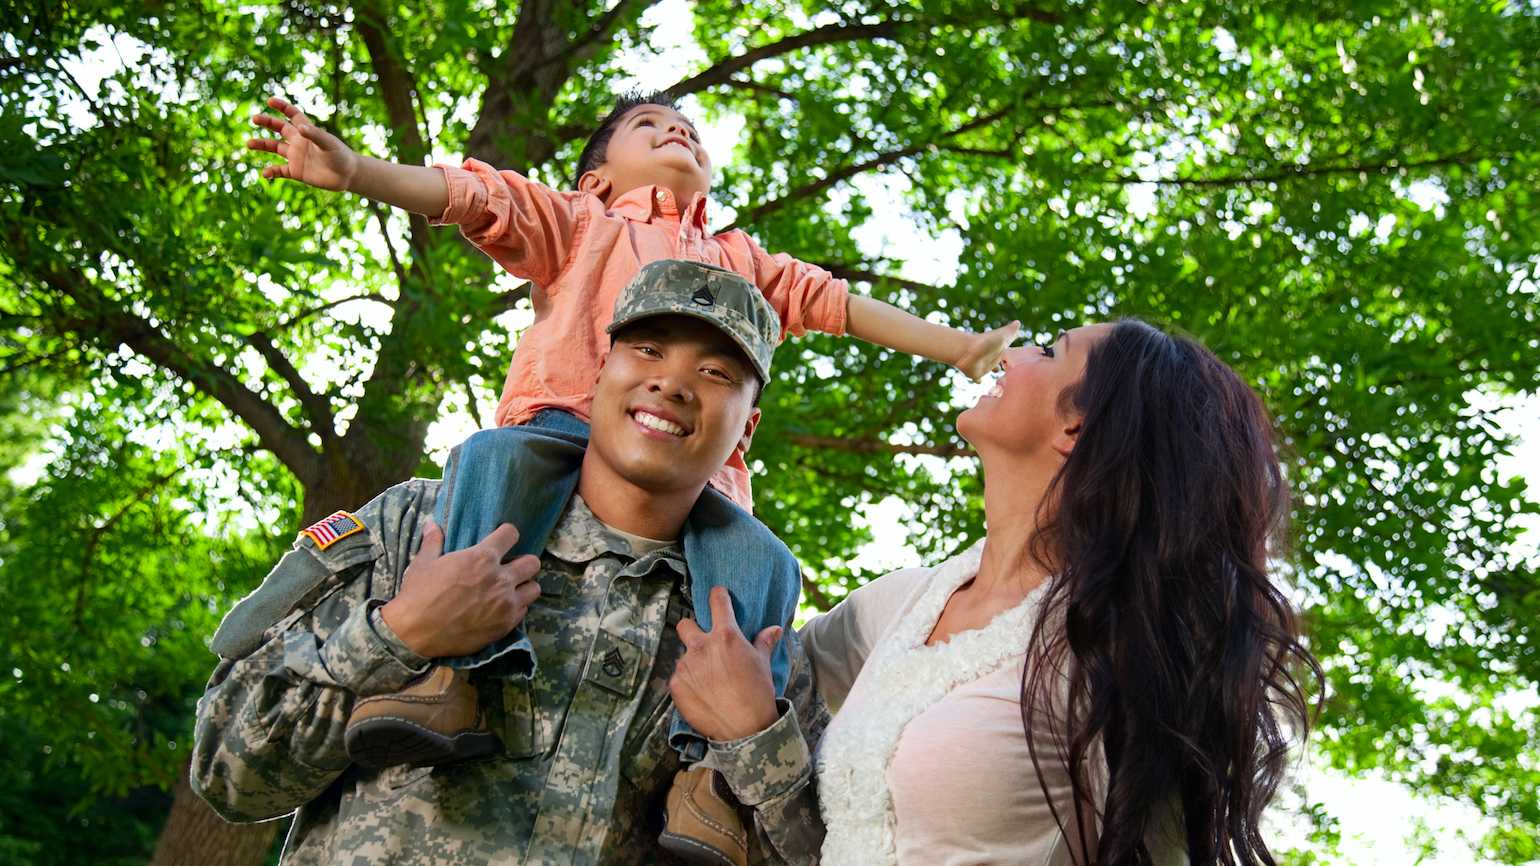 Speak words of affirmation to military families.